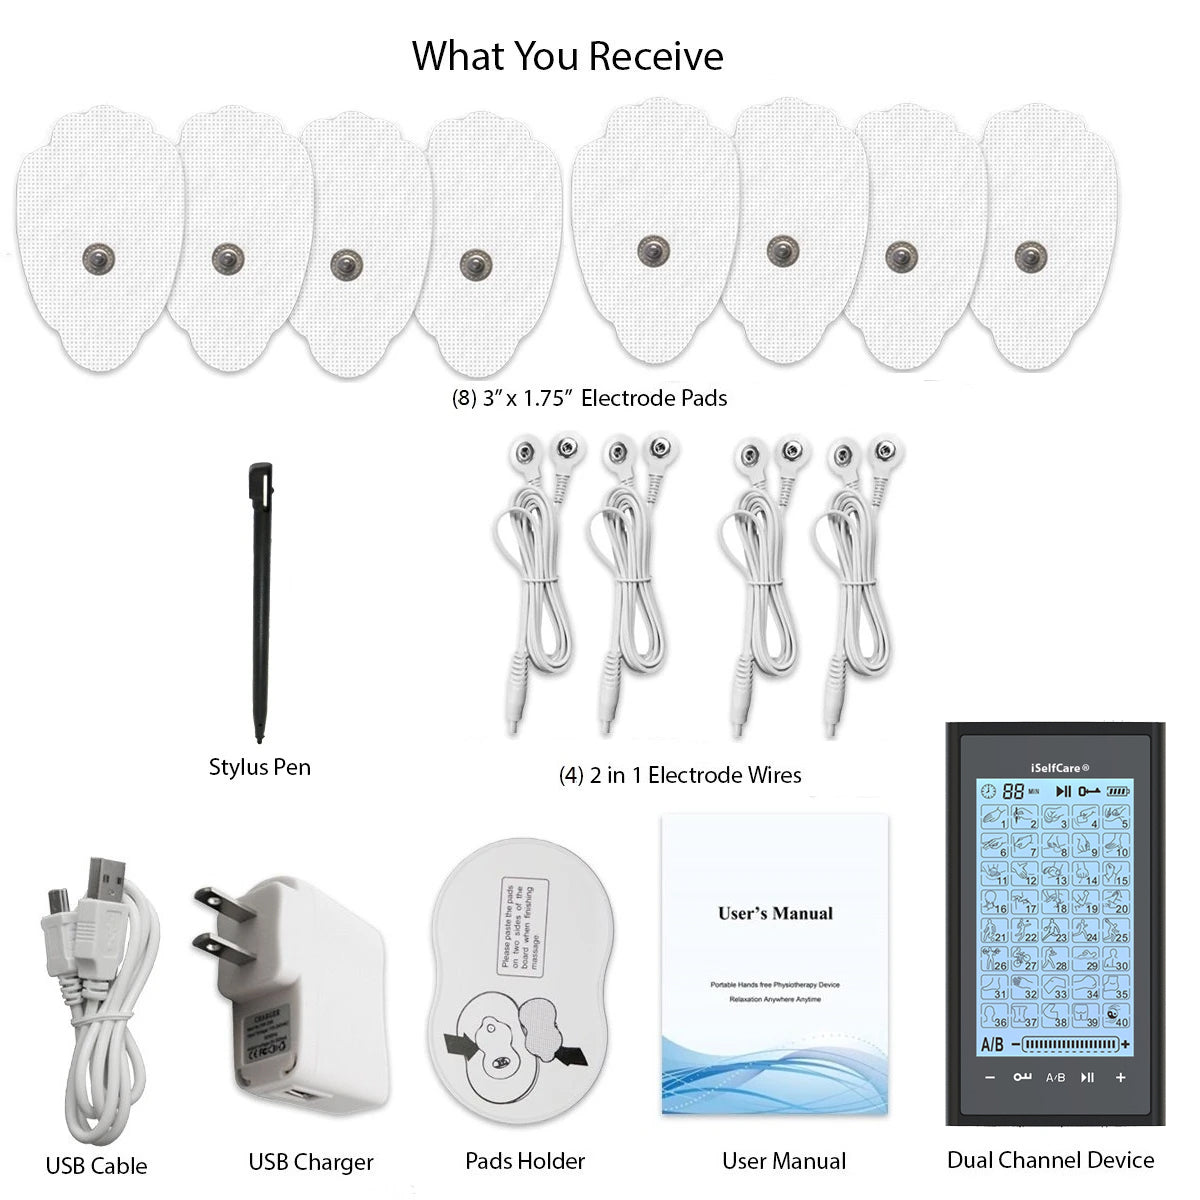 2020 Version 40 Modes T40AB2 iSelfCare® TENS unit & Muscle Stimulator - 2 Year Warranty - HealthmateForever